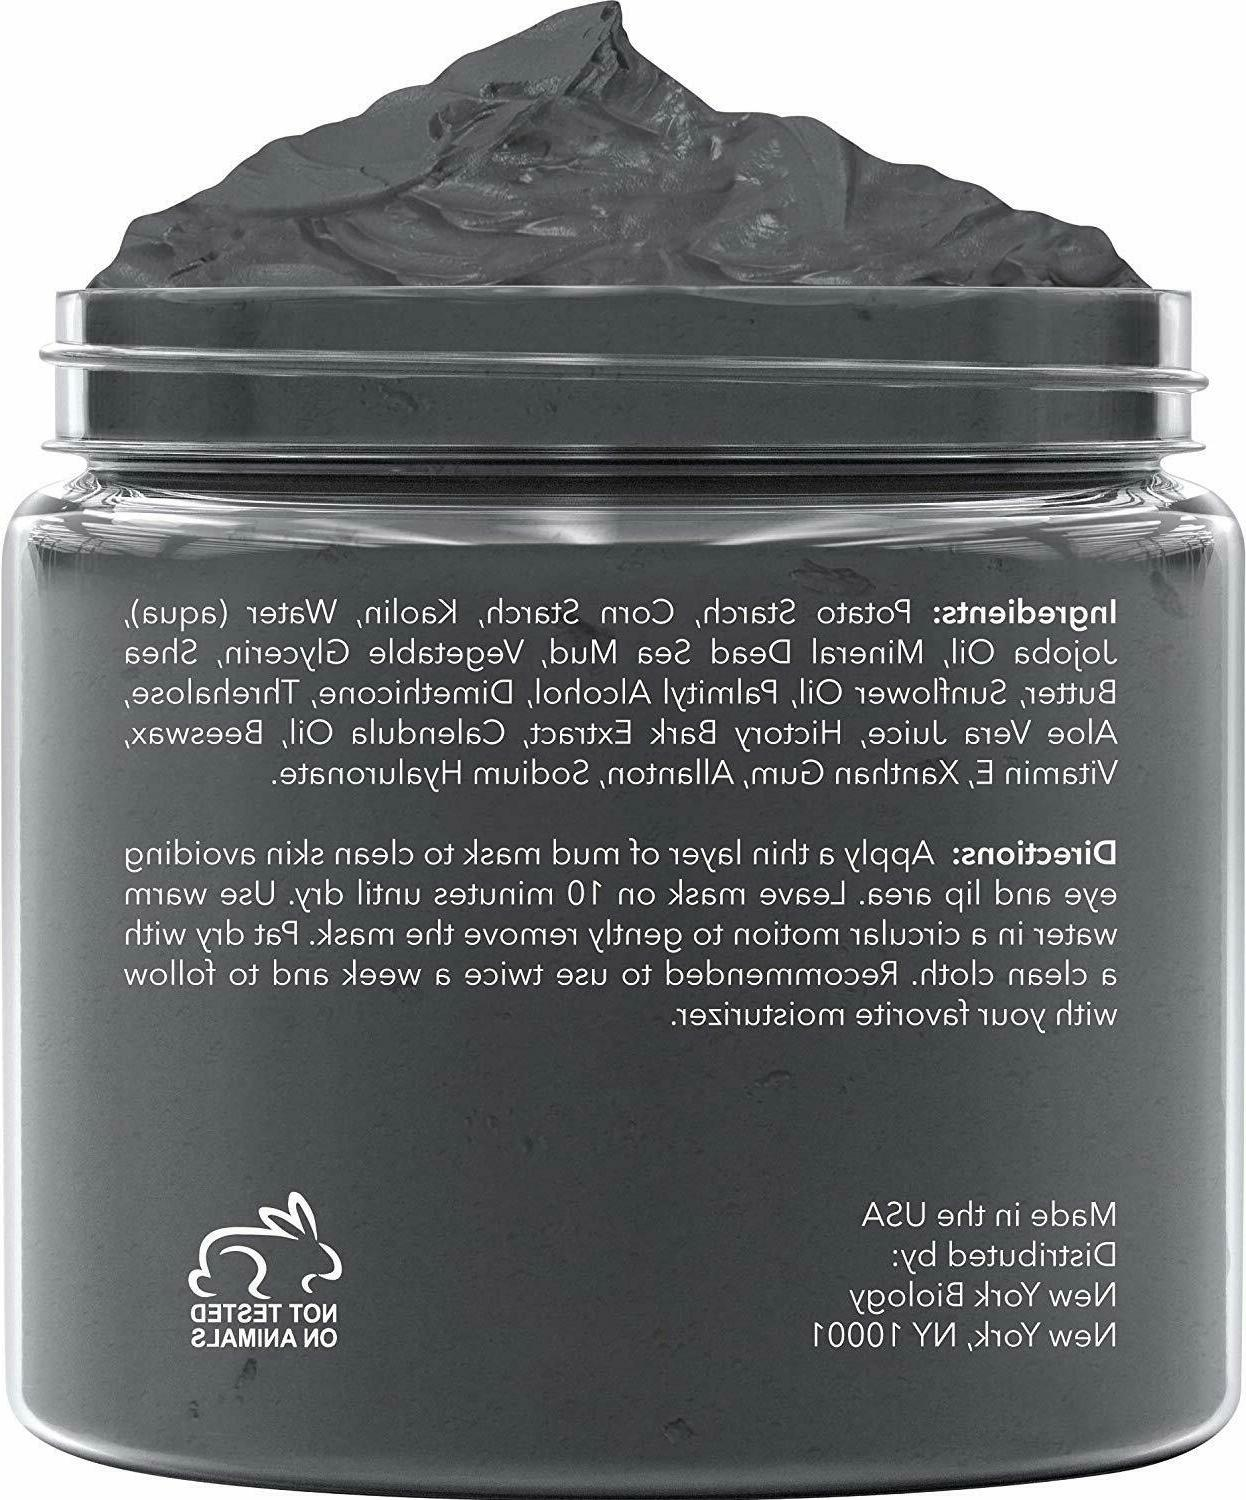 New Biology Sea Mud for Face and All Natural Quality